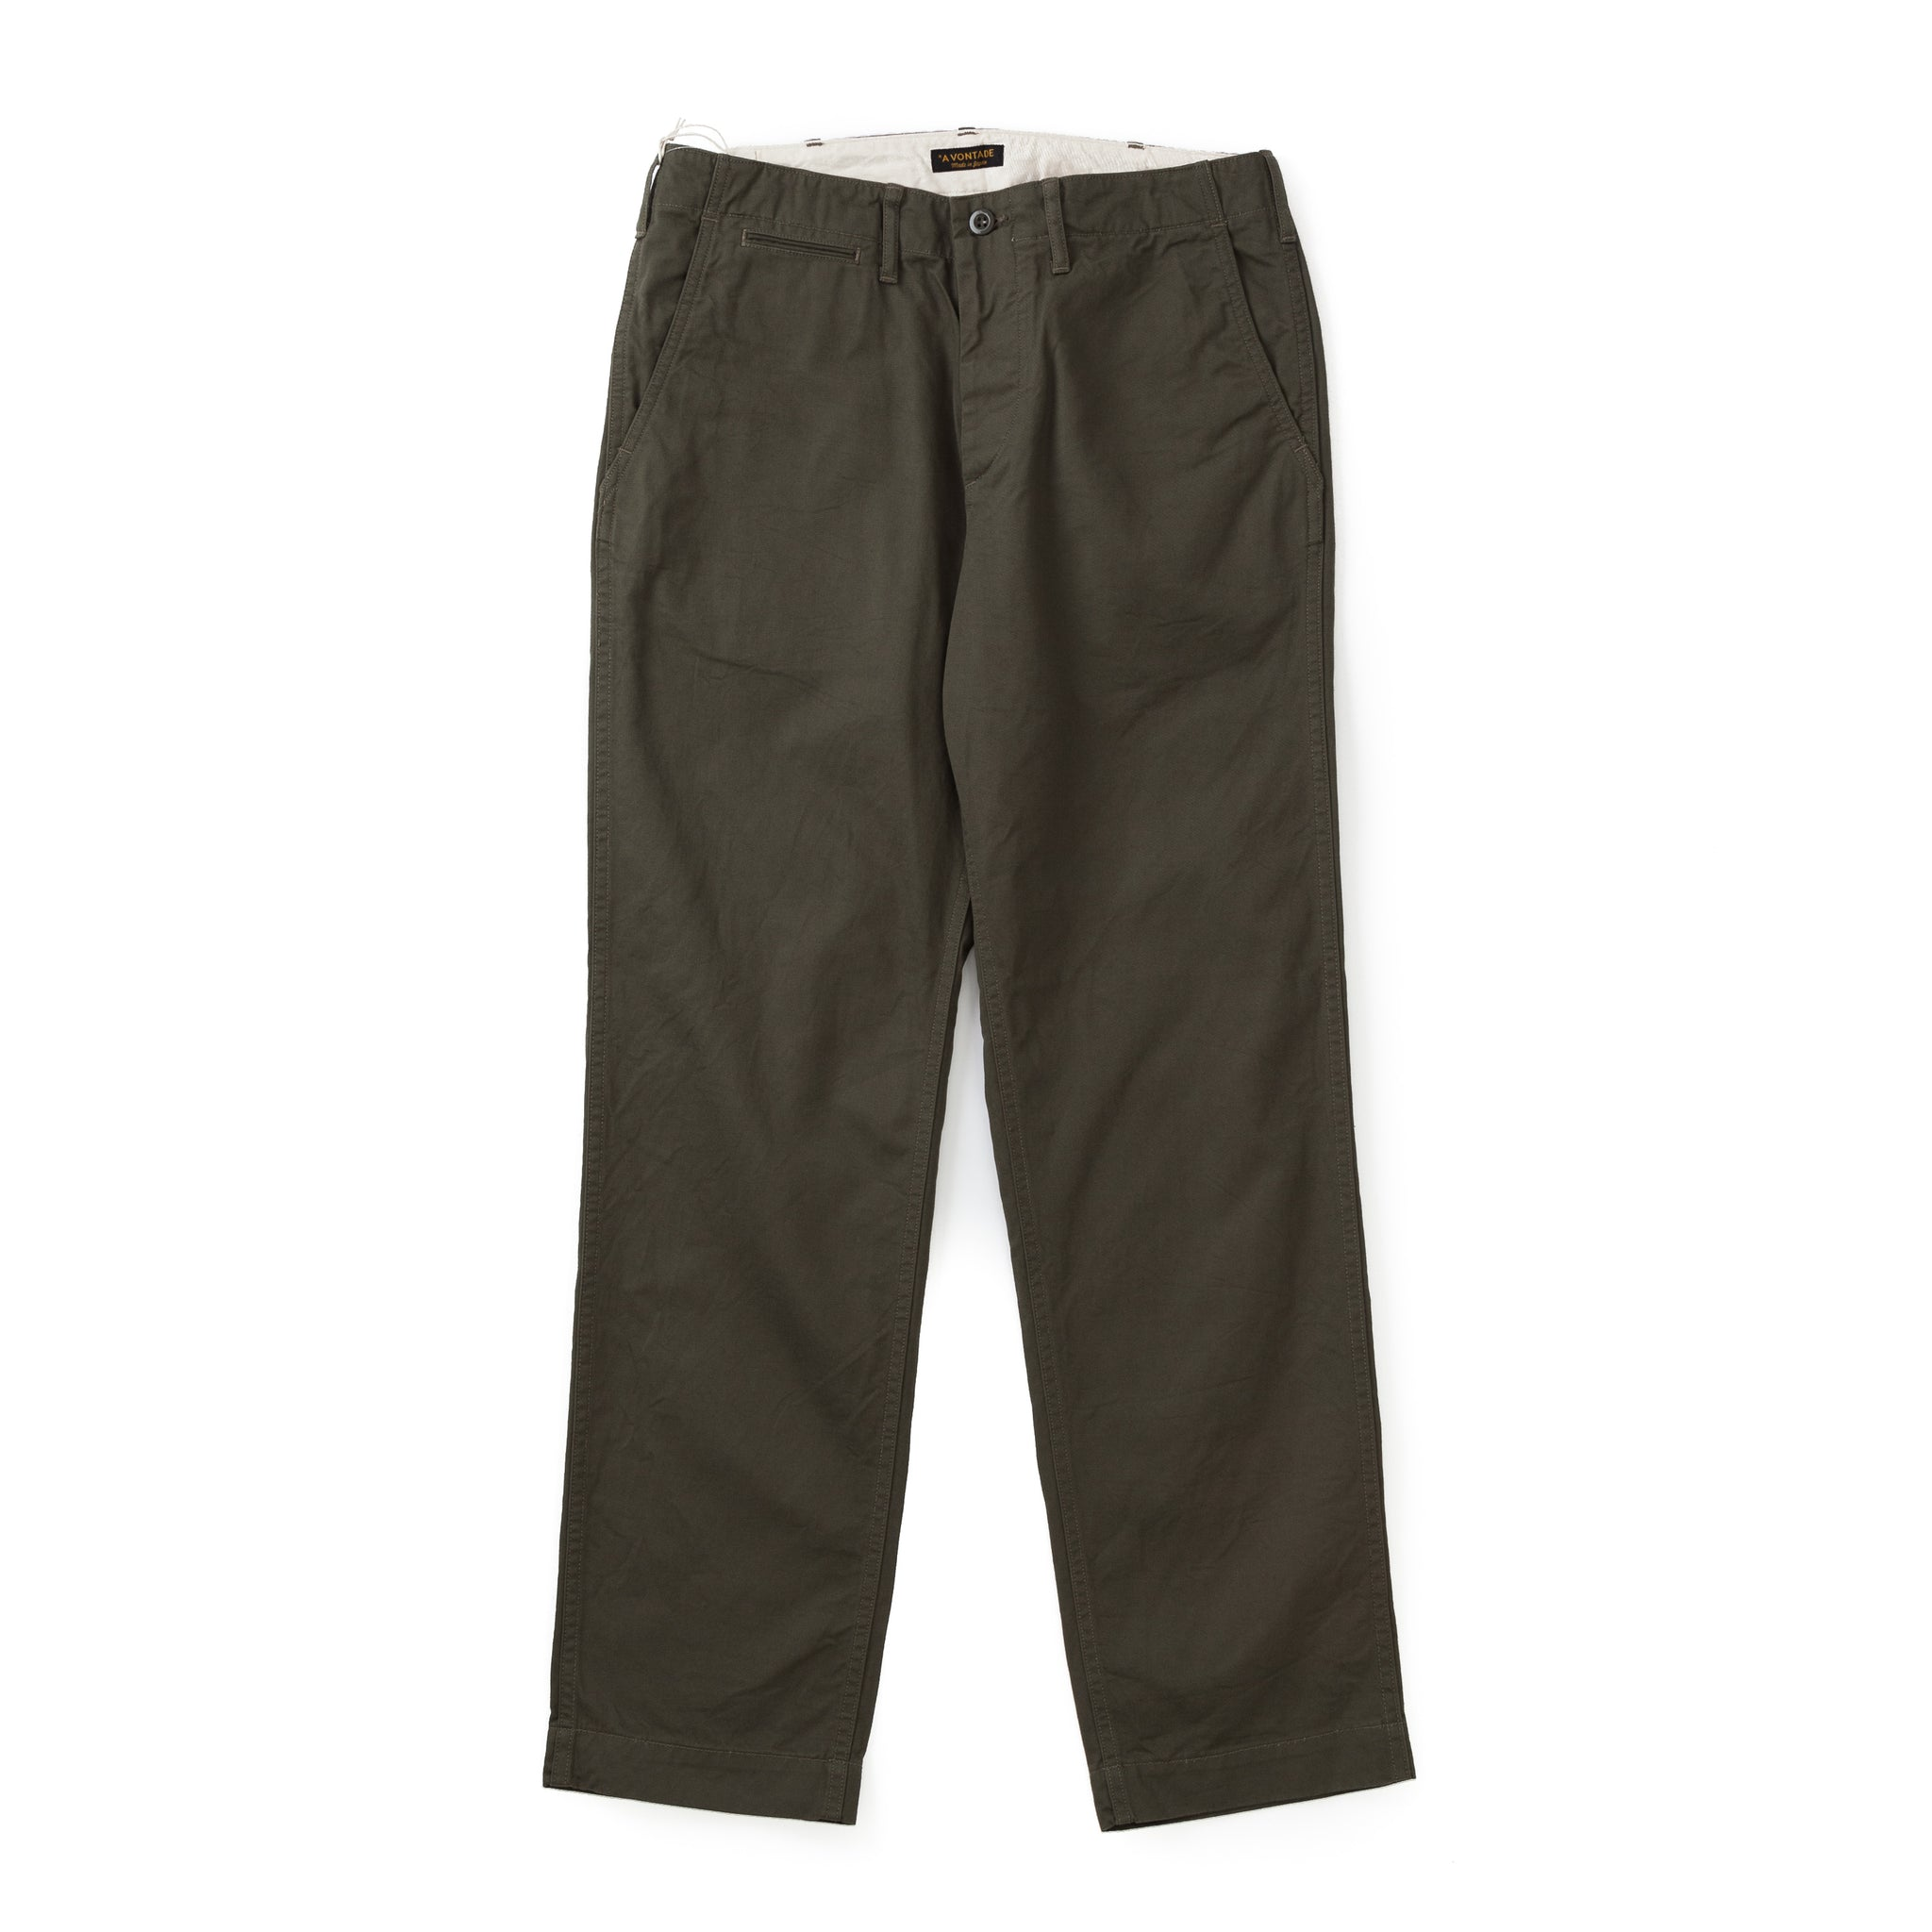 A Vontade Classic Chino Trousers (Regular Fit) Olive